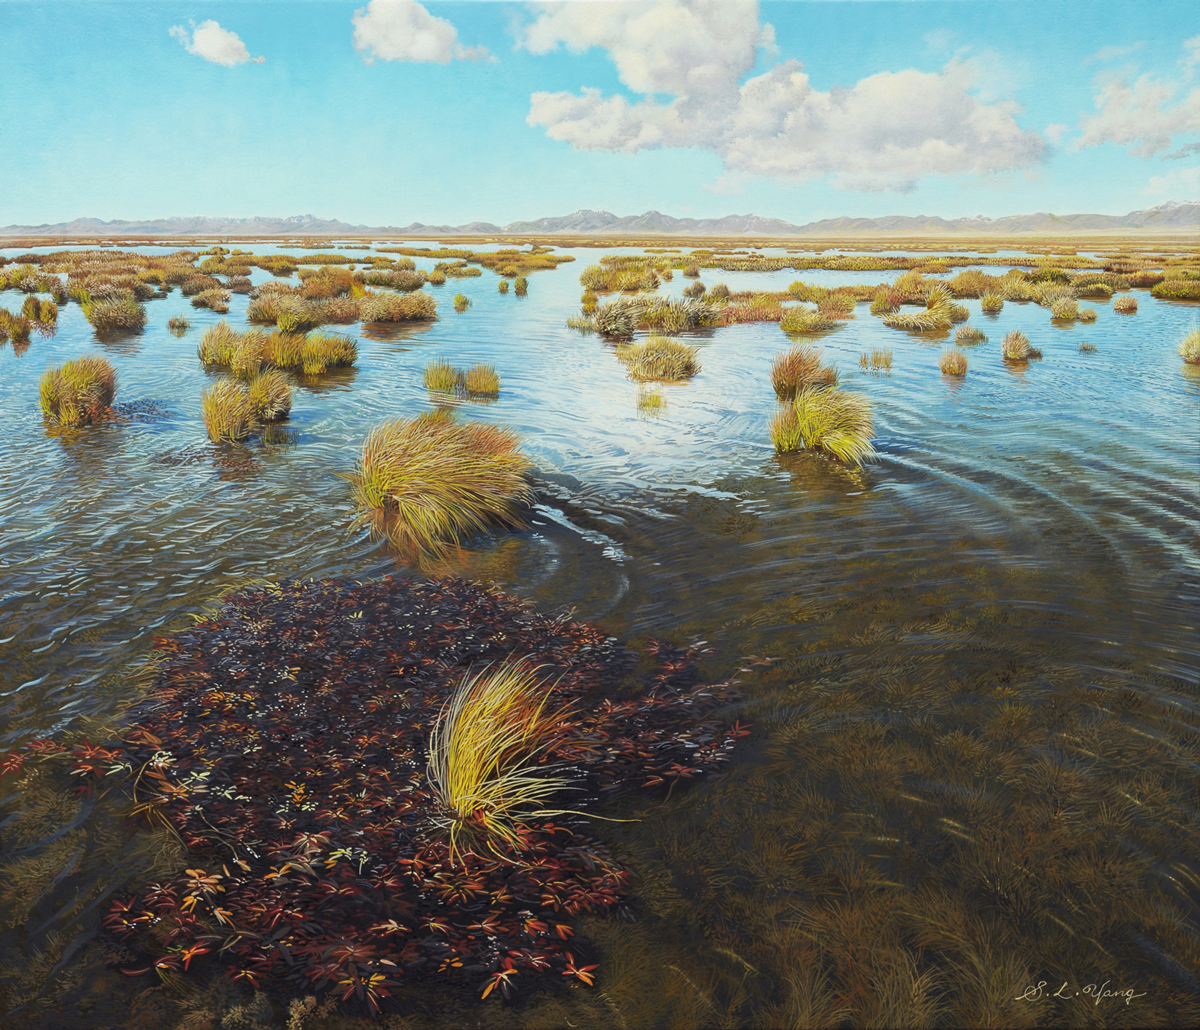 Yang Shao Liang, oil on canvas, F10, 2011